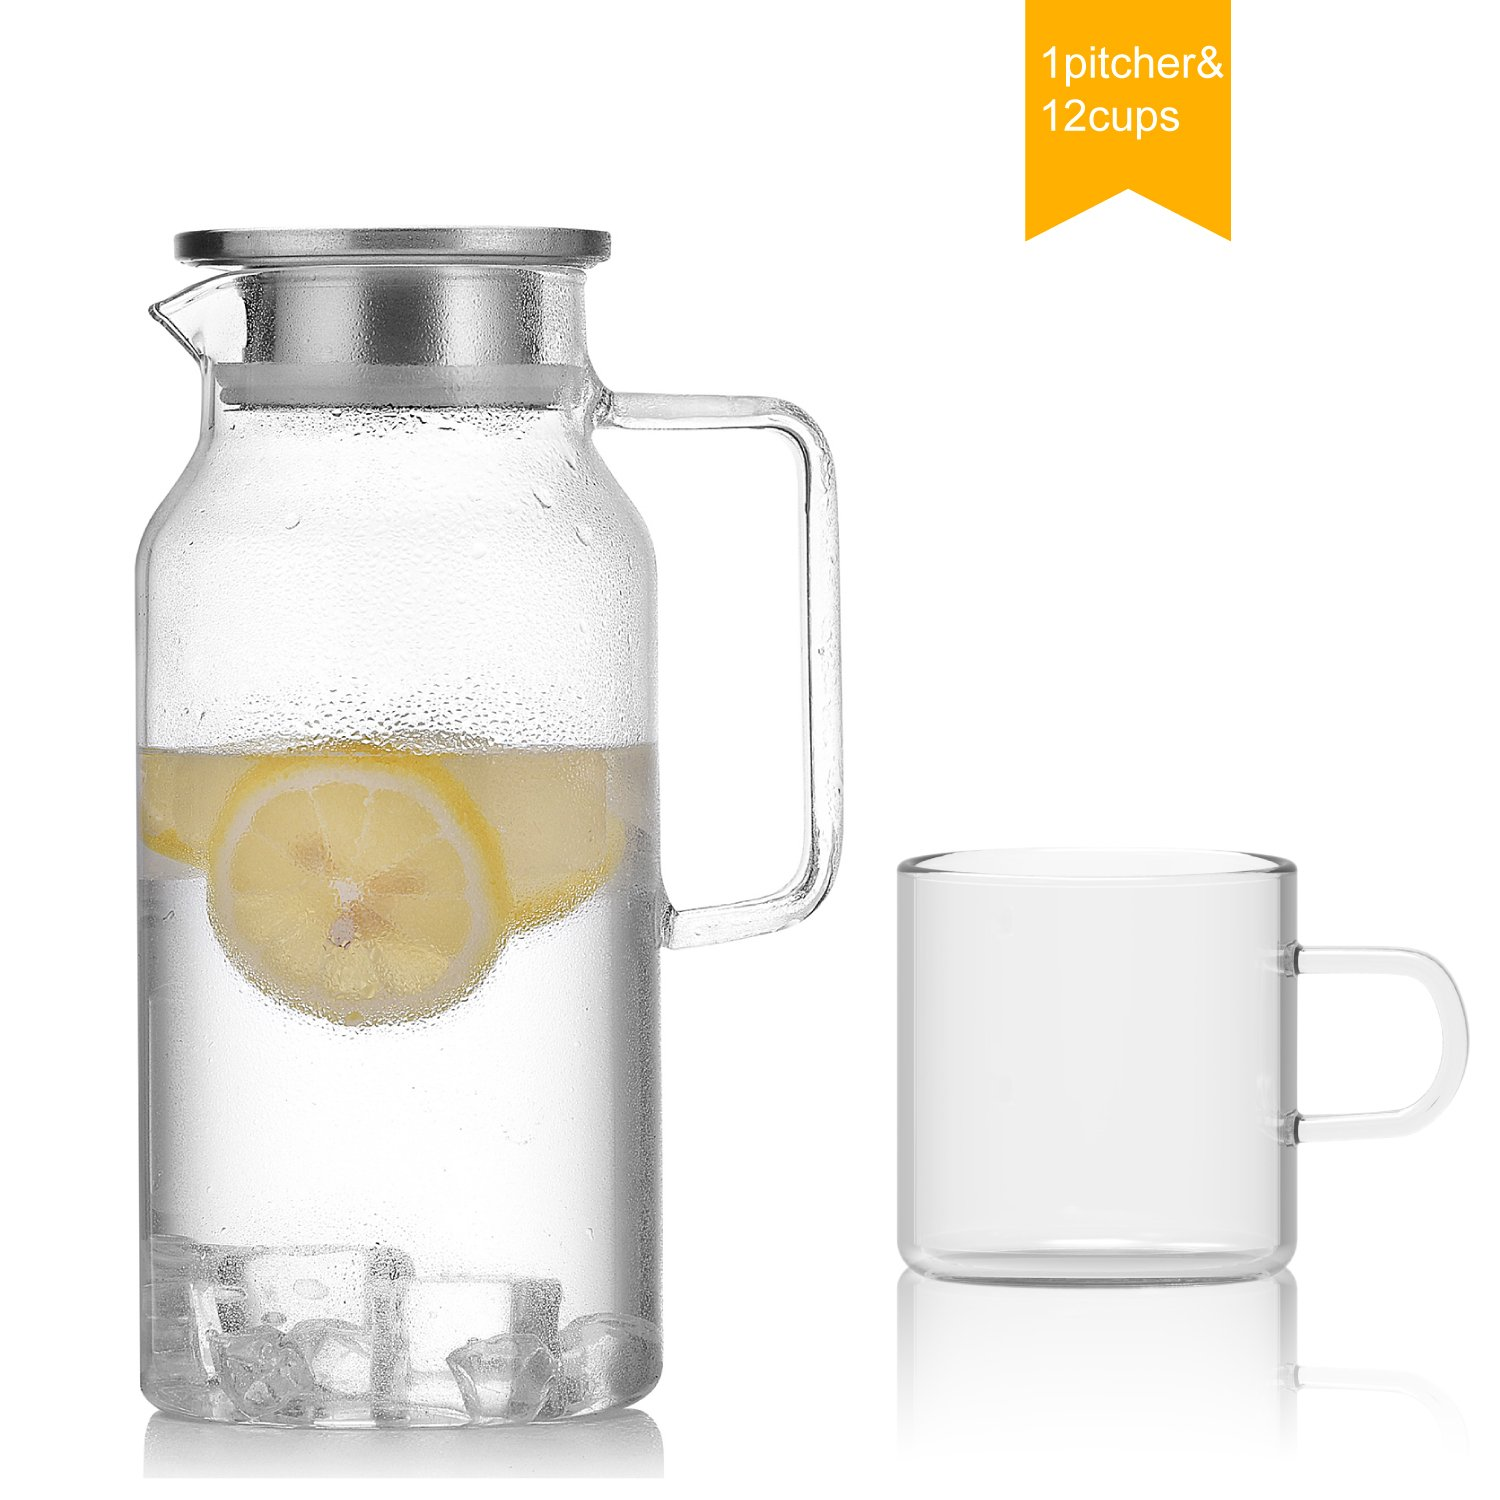 NORTHOME 58oz glass pitcher with lid,borosilicate hand blown jug for hot/cold water,juice or tea drinks carafe set (12, set of 13(1pitcher & 12 cups))